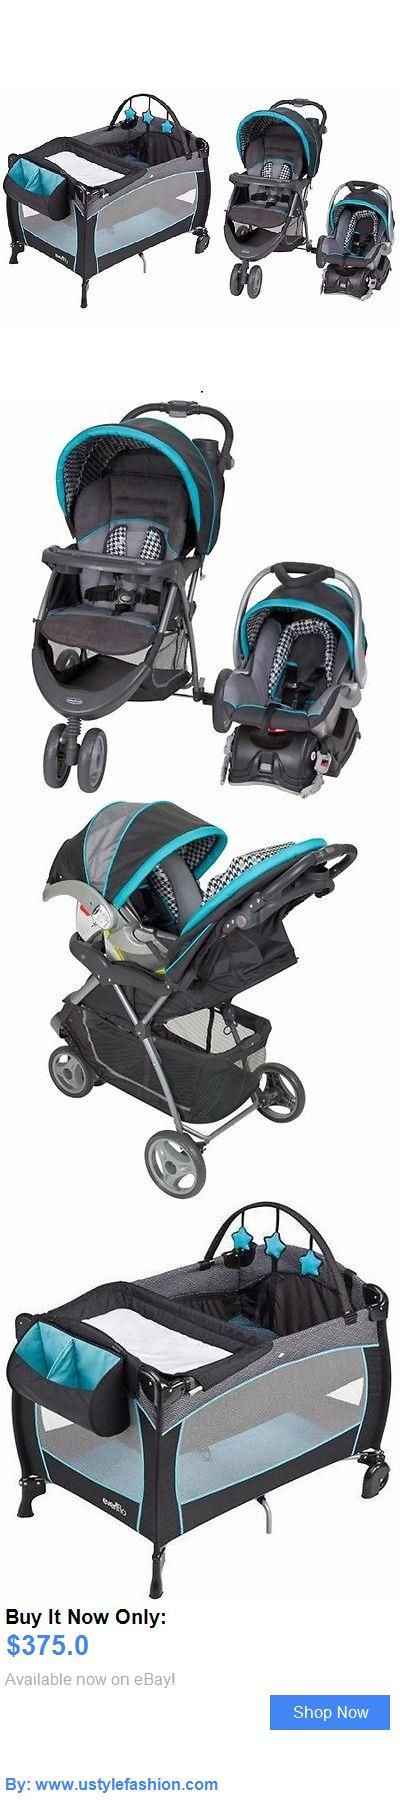 Other Stroller Accessories: Baby Stroller Travel System Car Nursery Center Playpen Station Infant Playard BUY IT NOW ONLY: $375.0 #ustylefashionOtherStrollerAccessories OR #ustylefashion